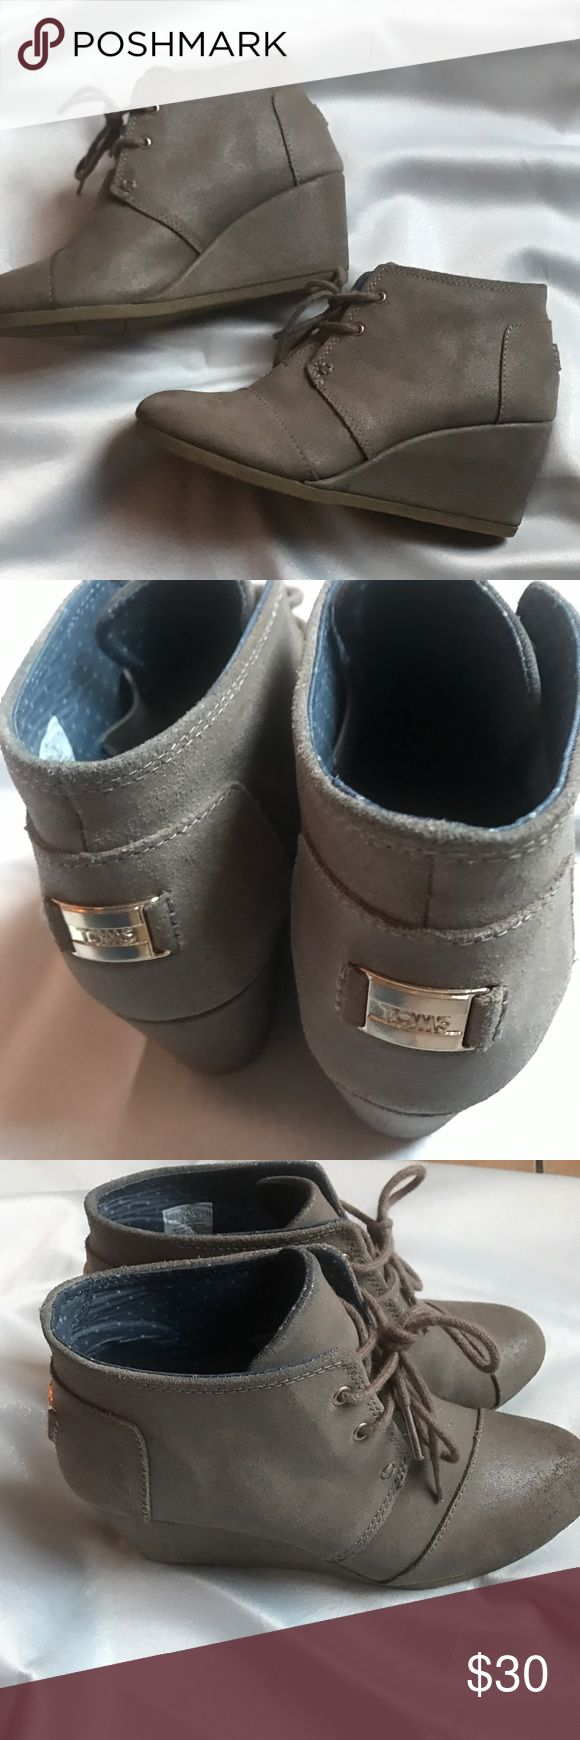 Toms wedge booties Used tom wedges still in great condition very comfortable! TOMS Shoes Ankle Boots & Booties